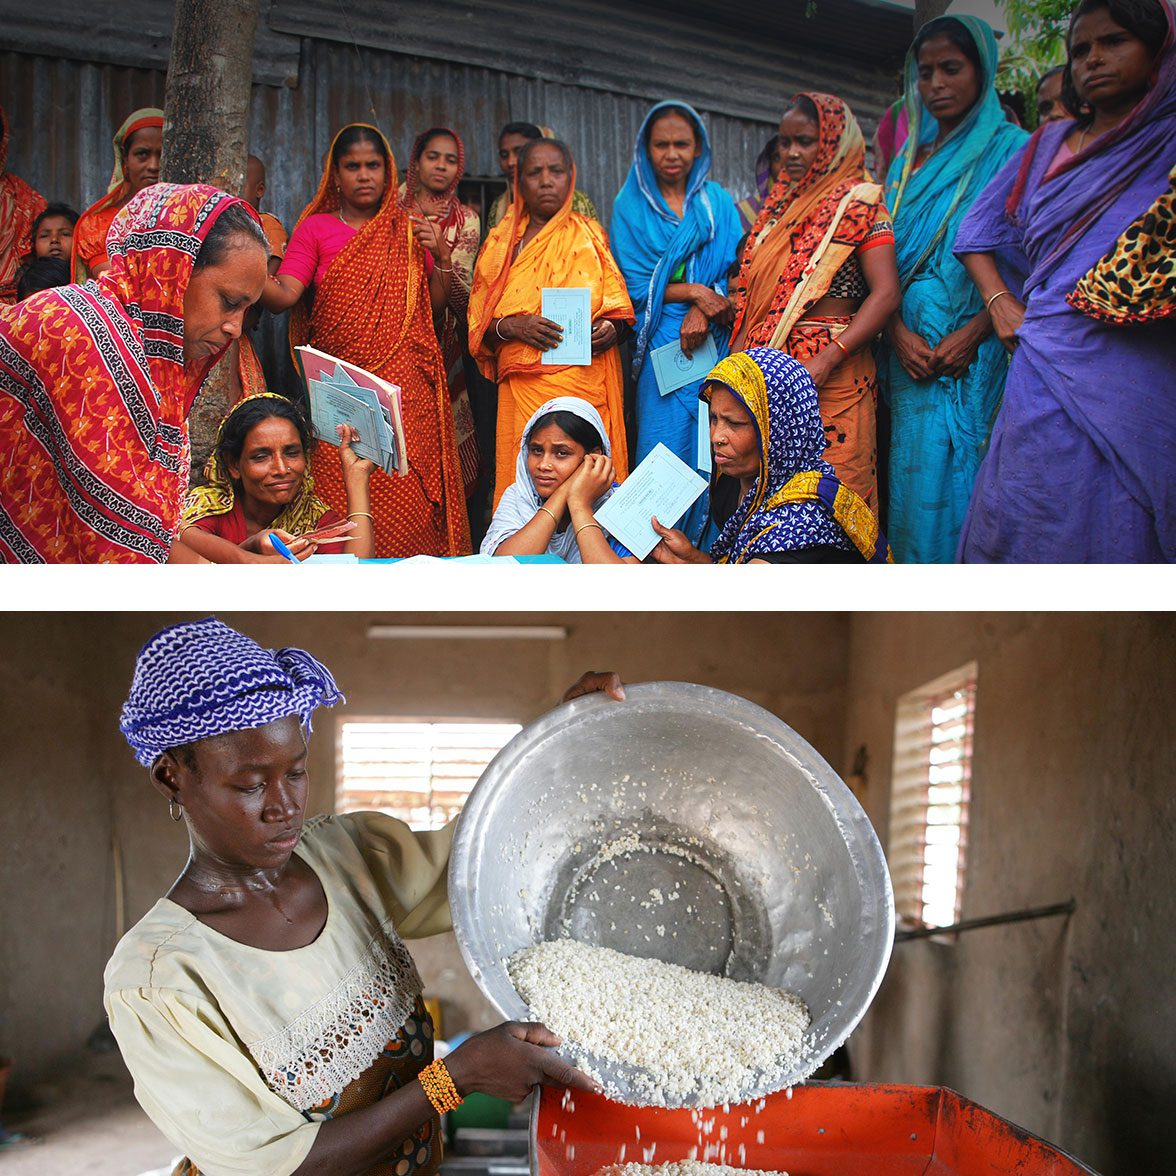 Images of women learning and cooking